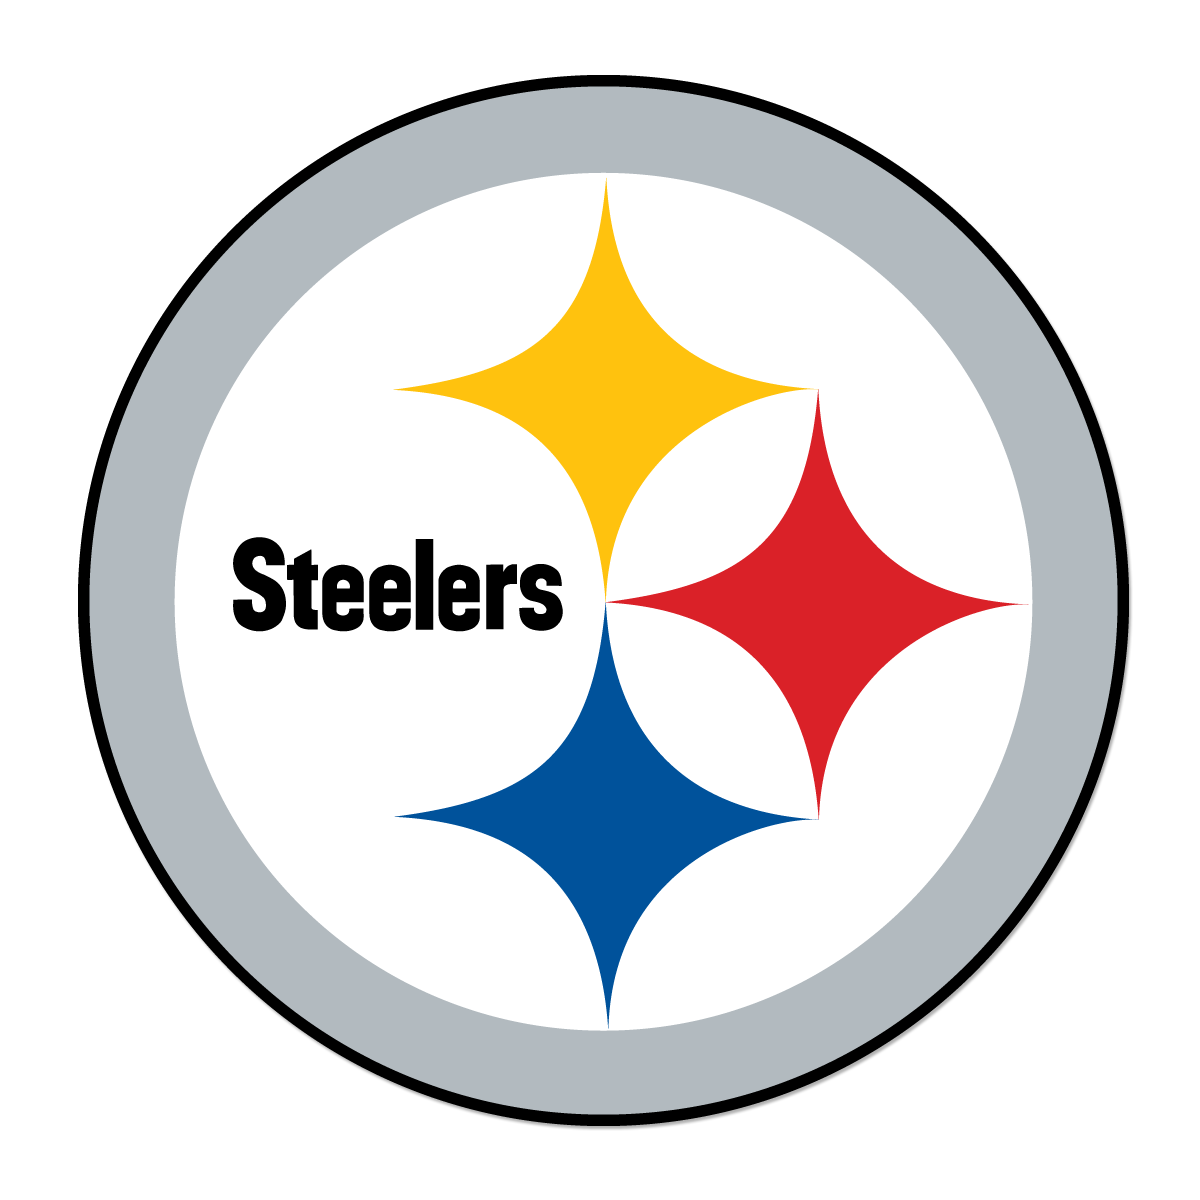 pittsburgh steelers logopedia fandom powered by wikia rh logos wikia com images of pittsburgh steelers logo show pictures of steelers logo